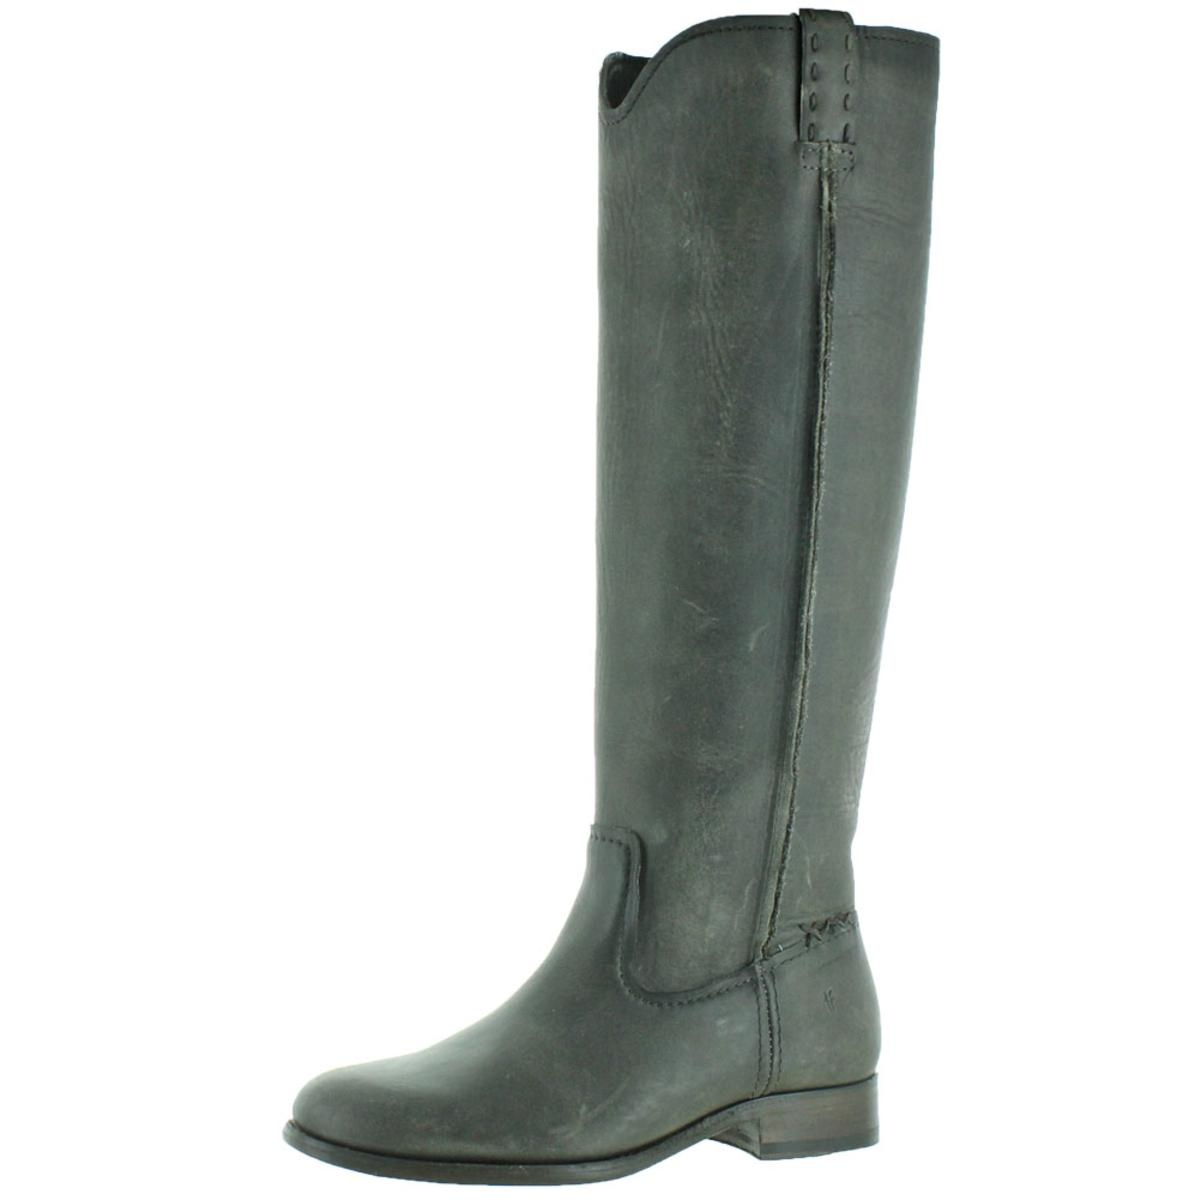 4eb033622ebd7 Details about Frye Cara Tall Women s Knee-High Pull-On Riding Boots